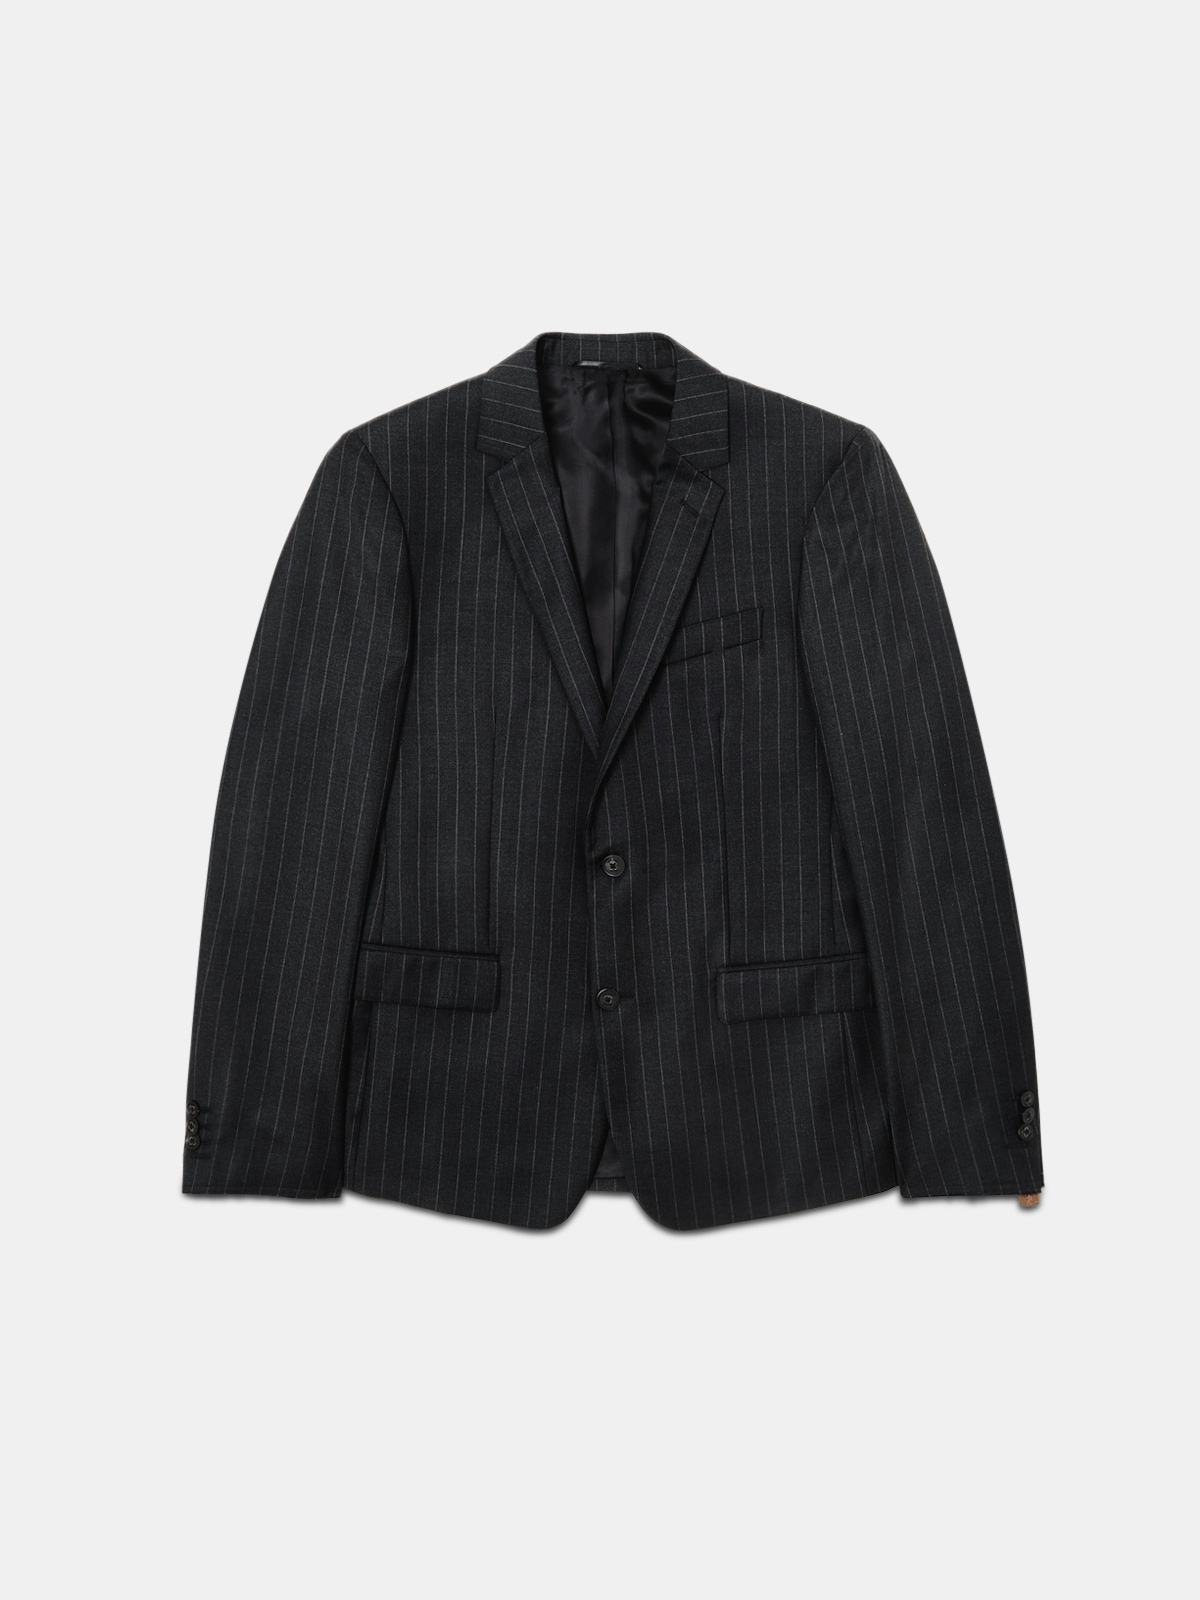 Golden Goose - Milano blazer with pinstripe motif and raw edge details in